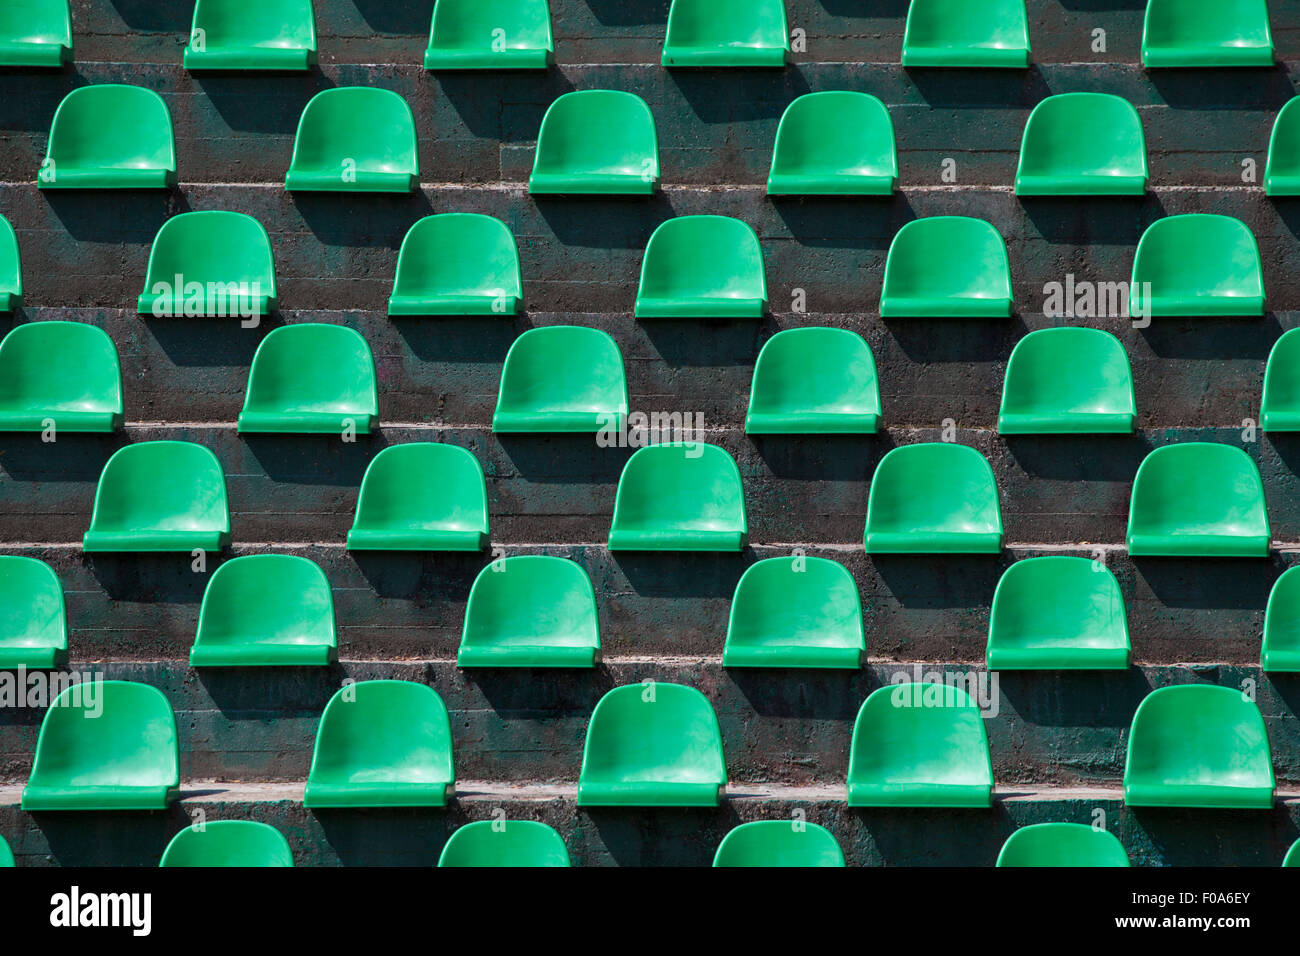 Image of green plastic stadium seats in rows. The seats are filled the frame as background. This is a day shot of - Stock Image